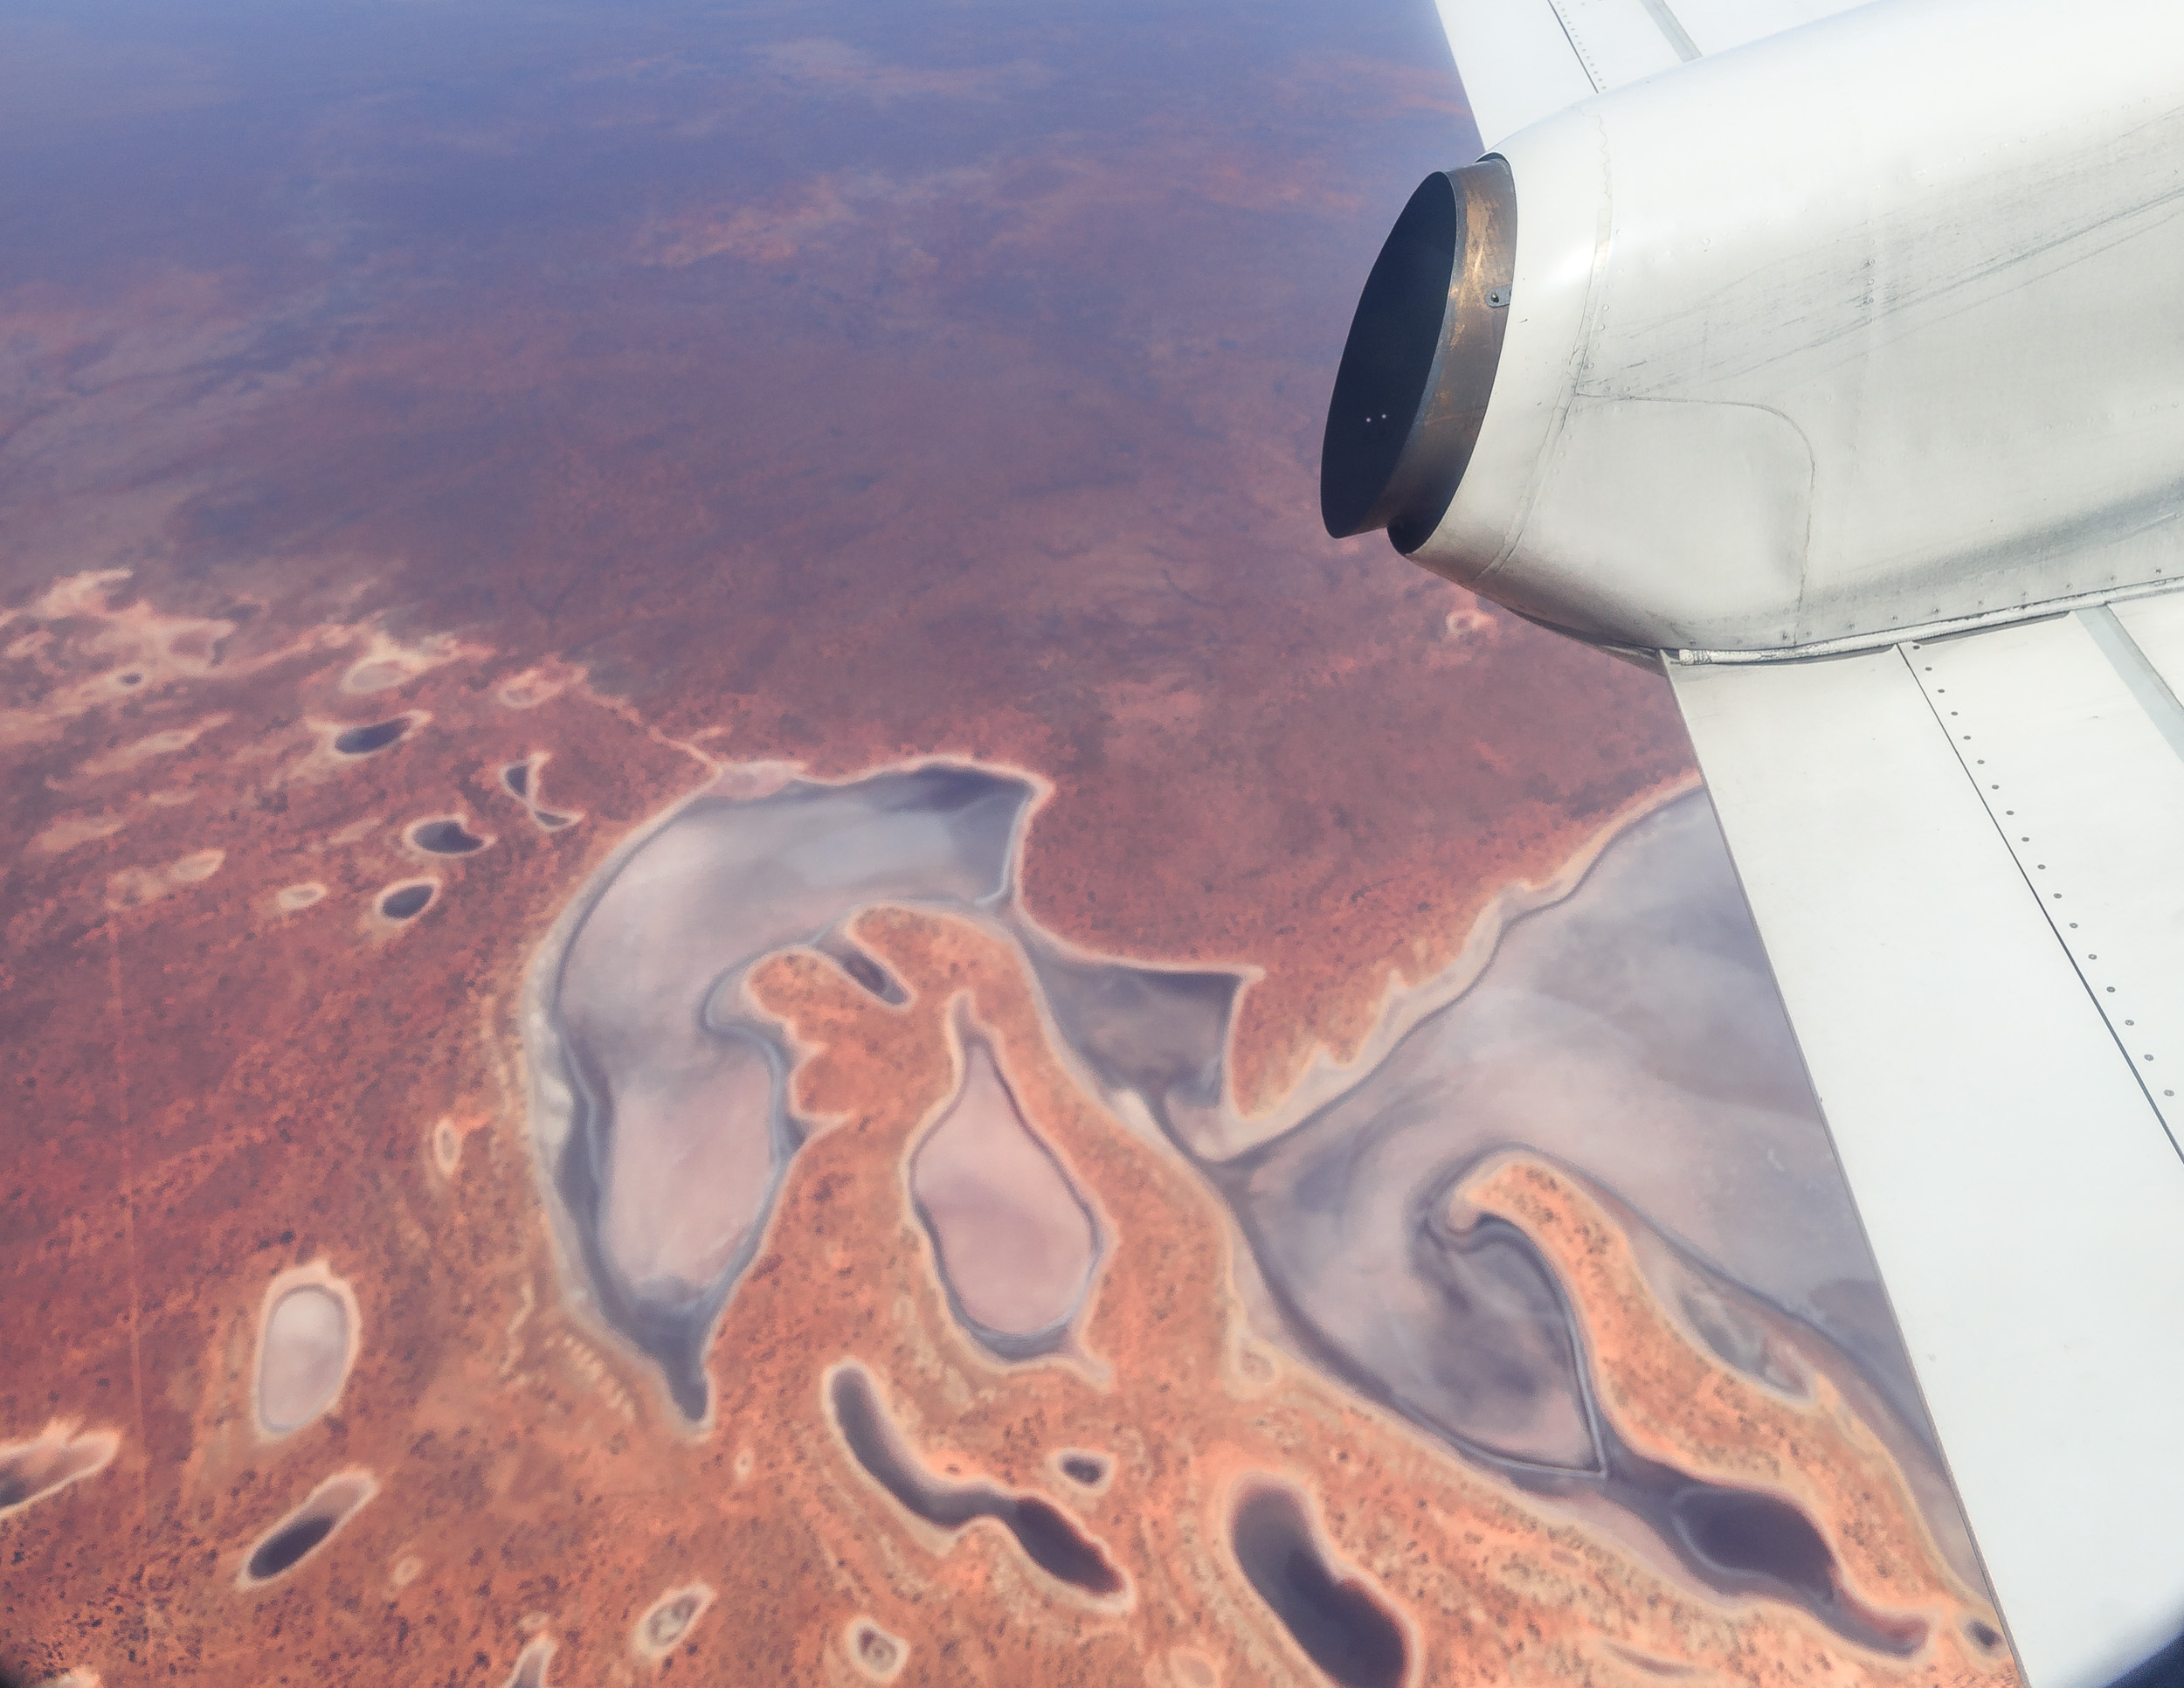 The flight from Adelaide to Coober Pedy